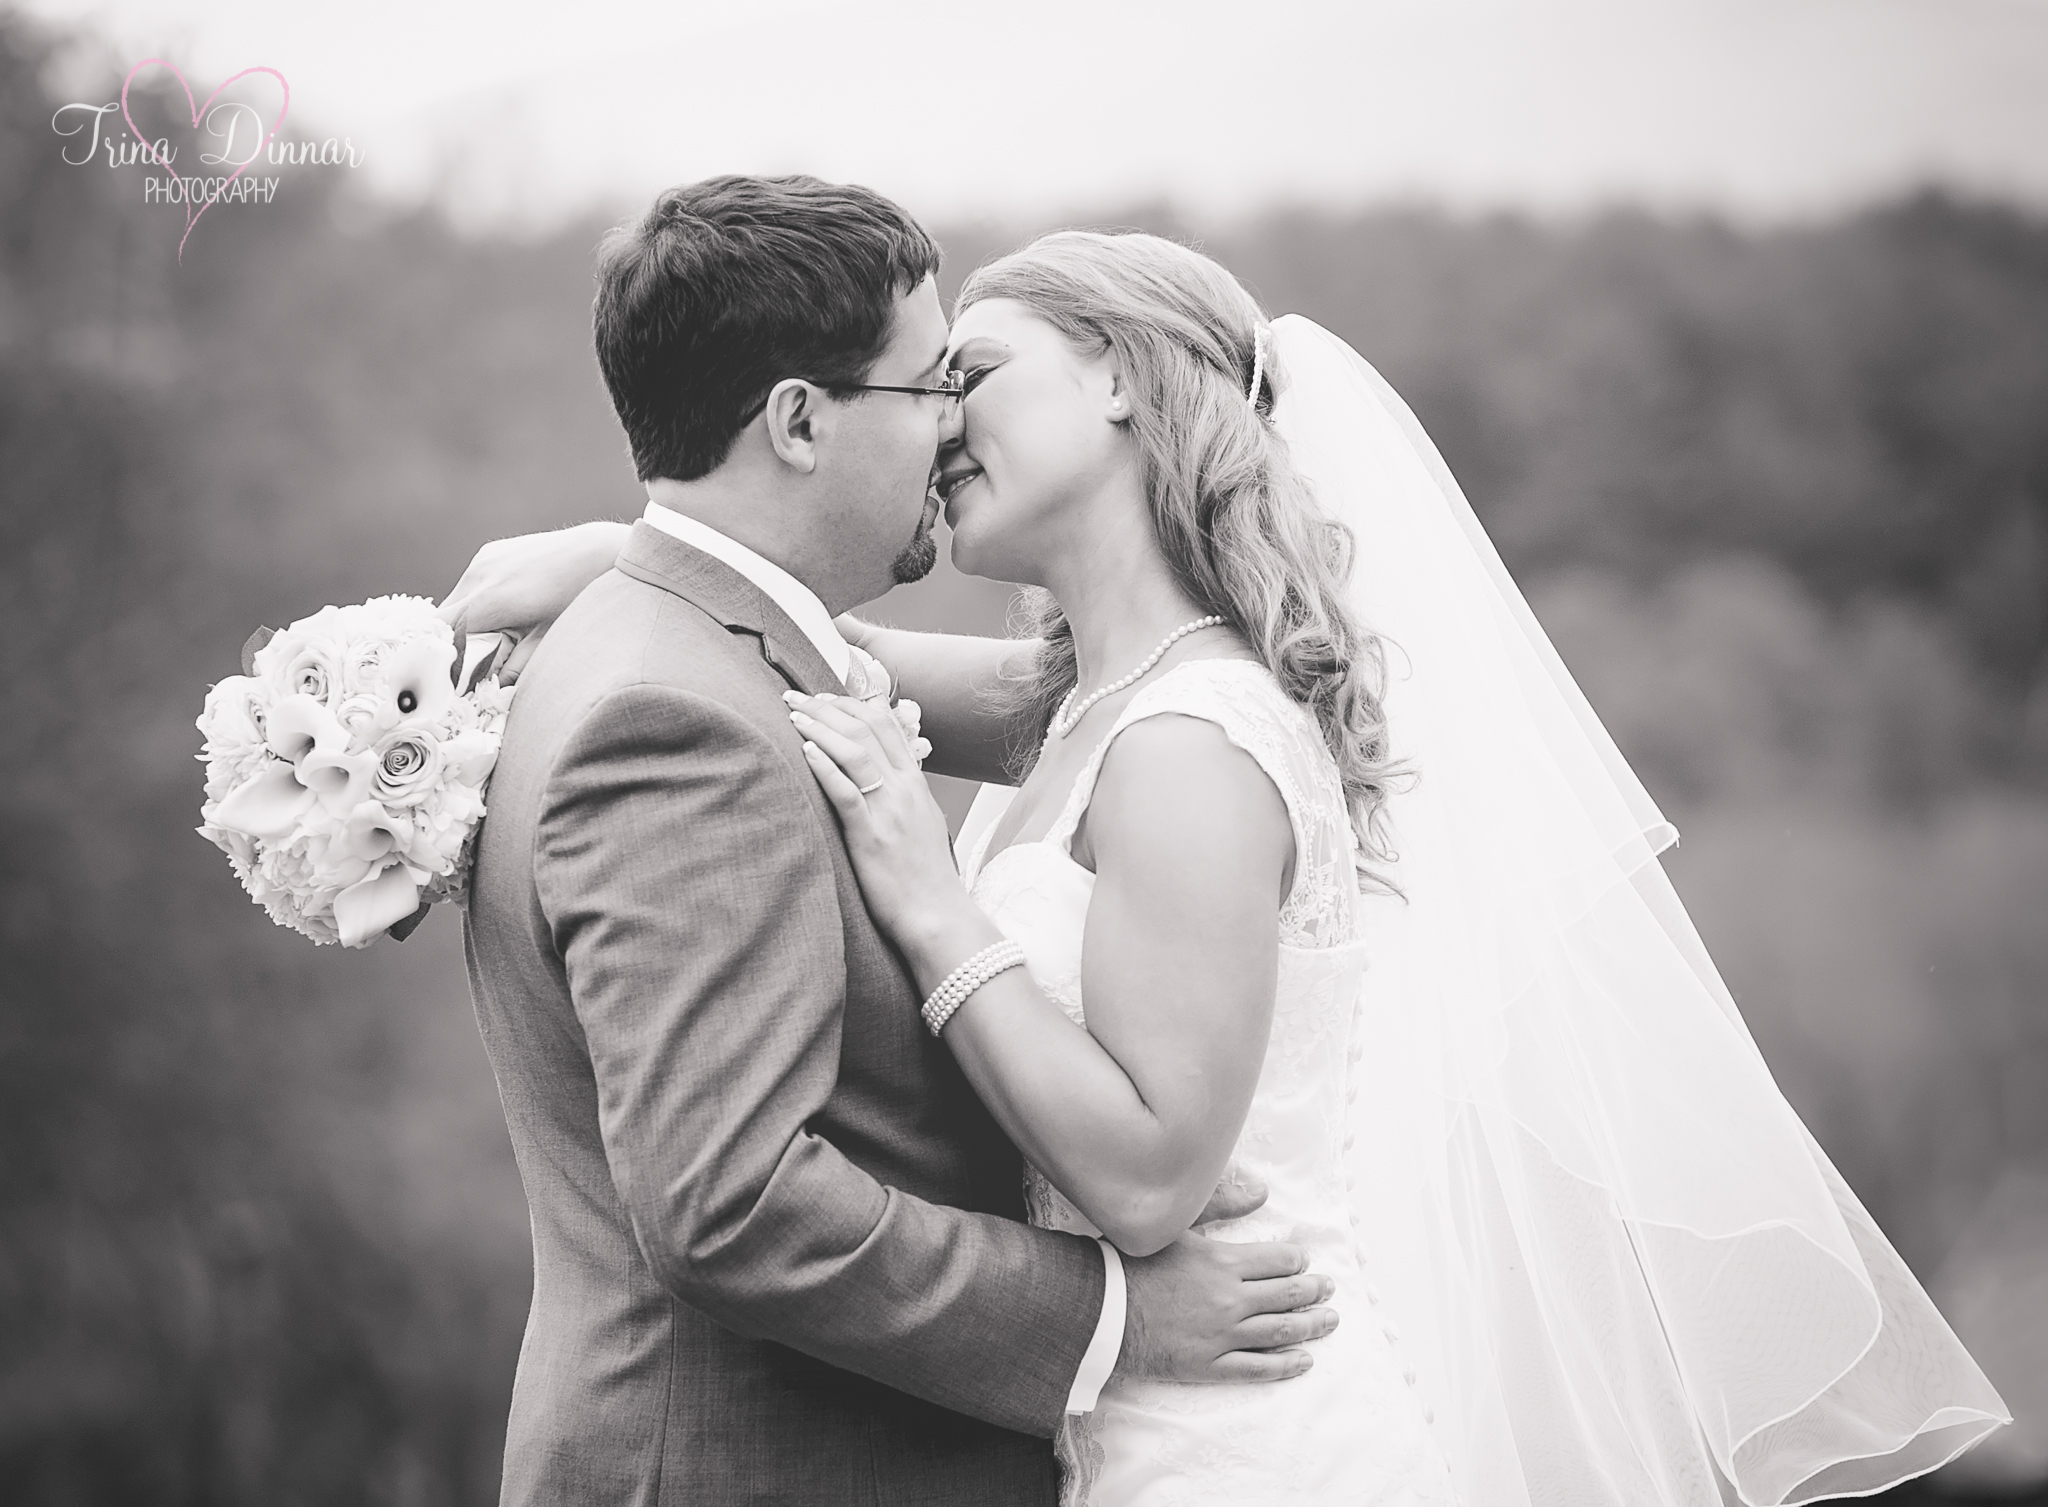 Maine wedding photographer, Trina Dinnar Photography captures kiss from bride and groom.